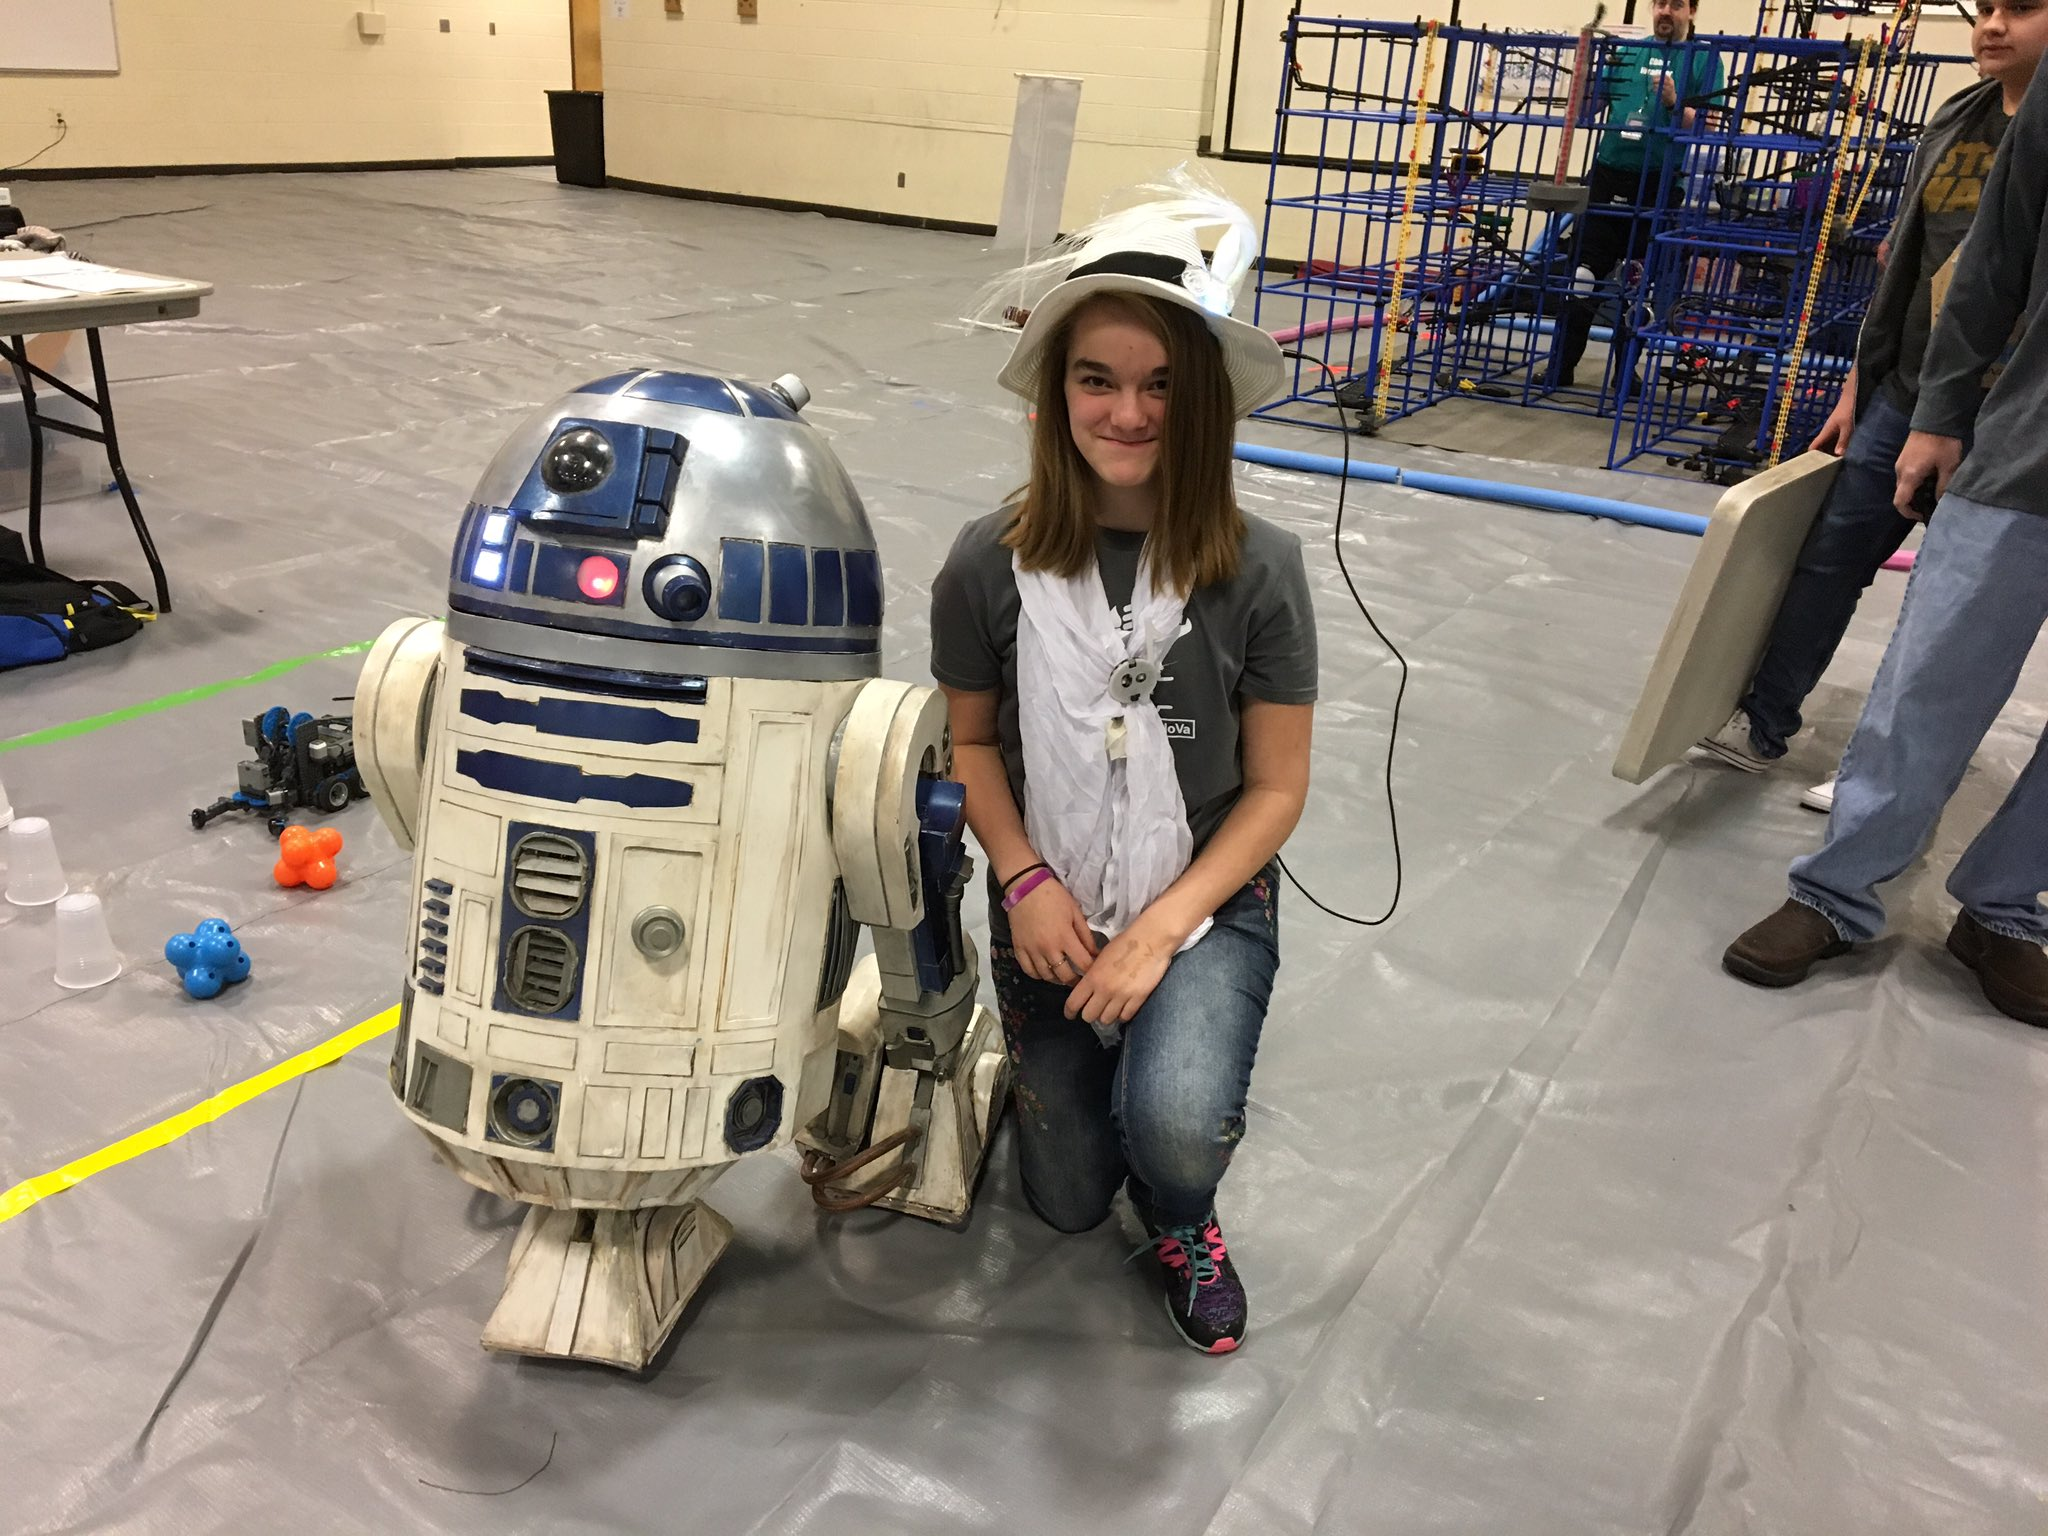 Some quality time for R2 with my daughter, her hat, and her scarf. Yes, I said that right. #myflinthill #makerfairenova https://t.co/eza2Ef1l0E